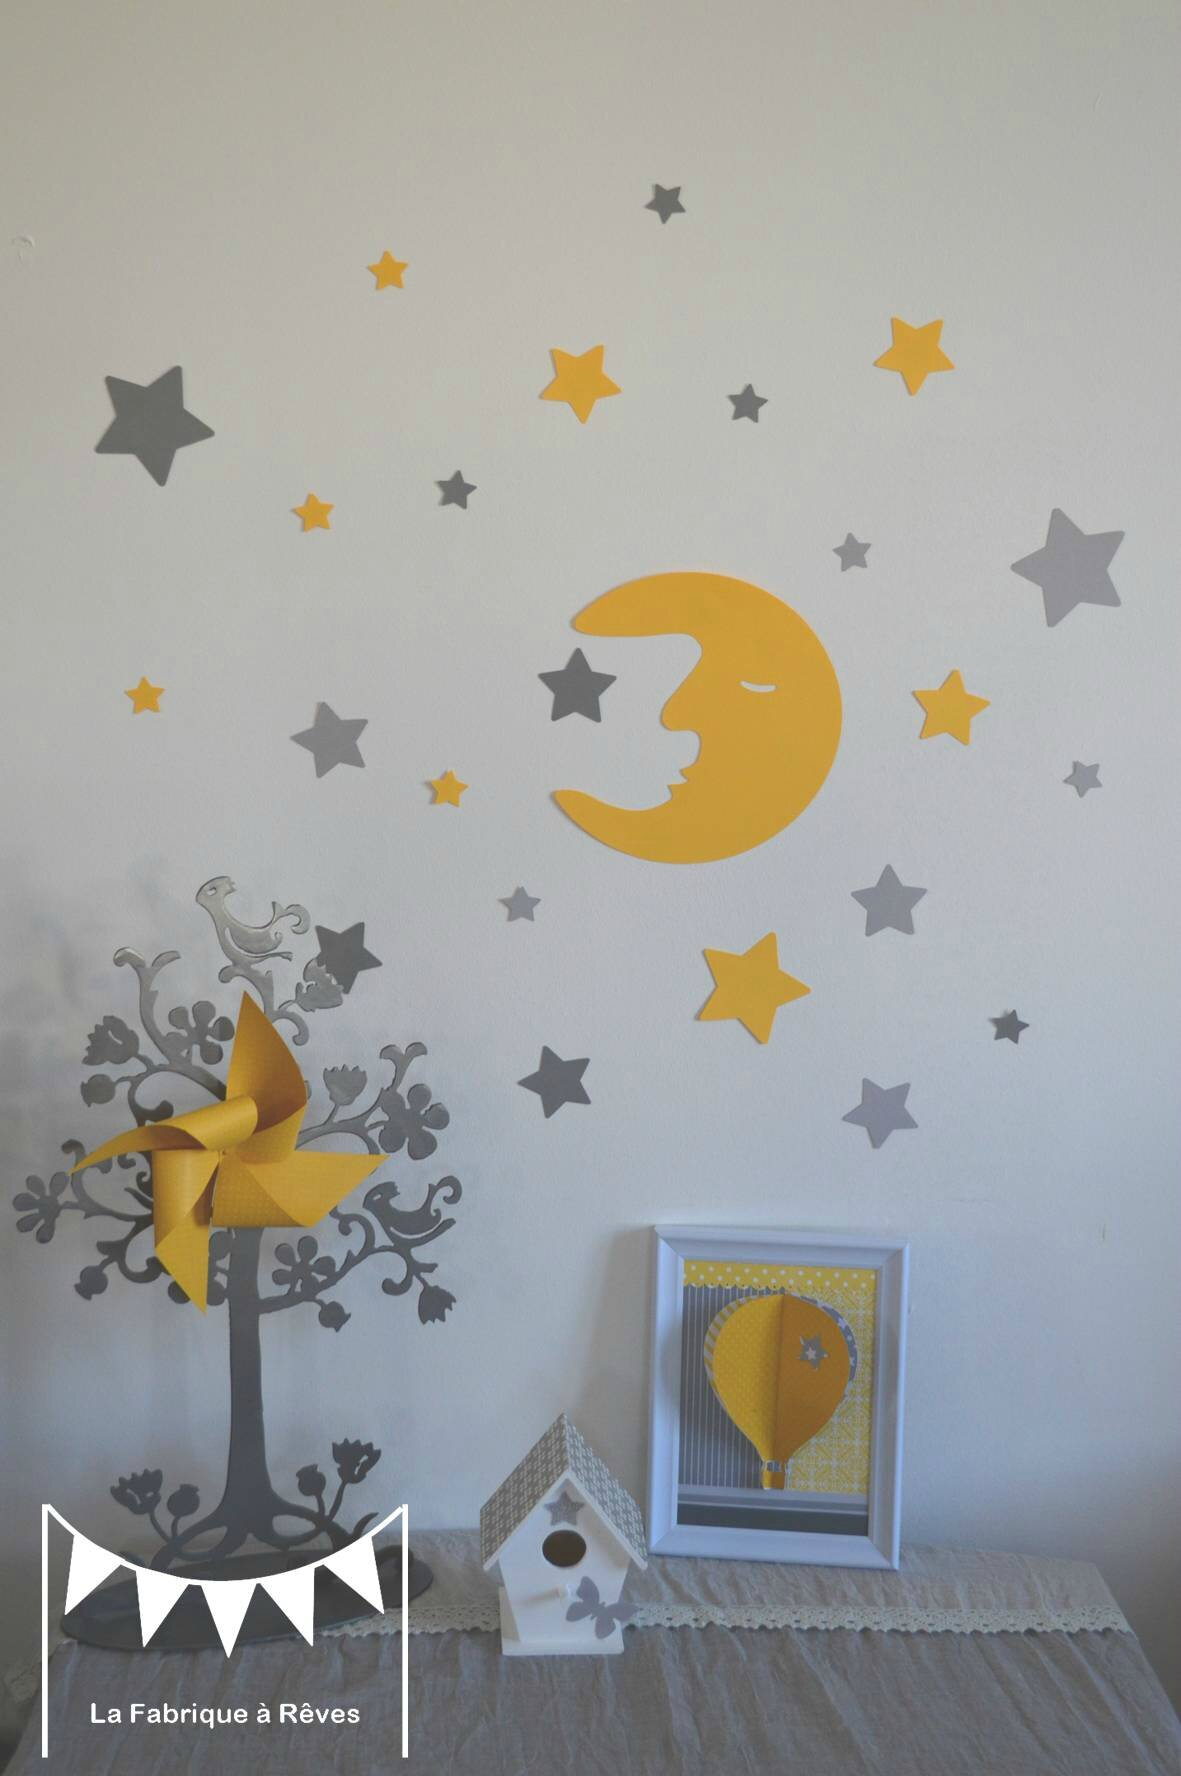 Stickers d coration chambre enfant fille b b gar on lune et toiles jaune gris photo de th me - Decoration chambre bebe jaune et gris ...